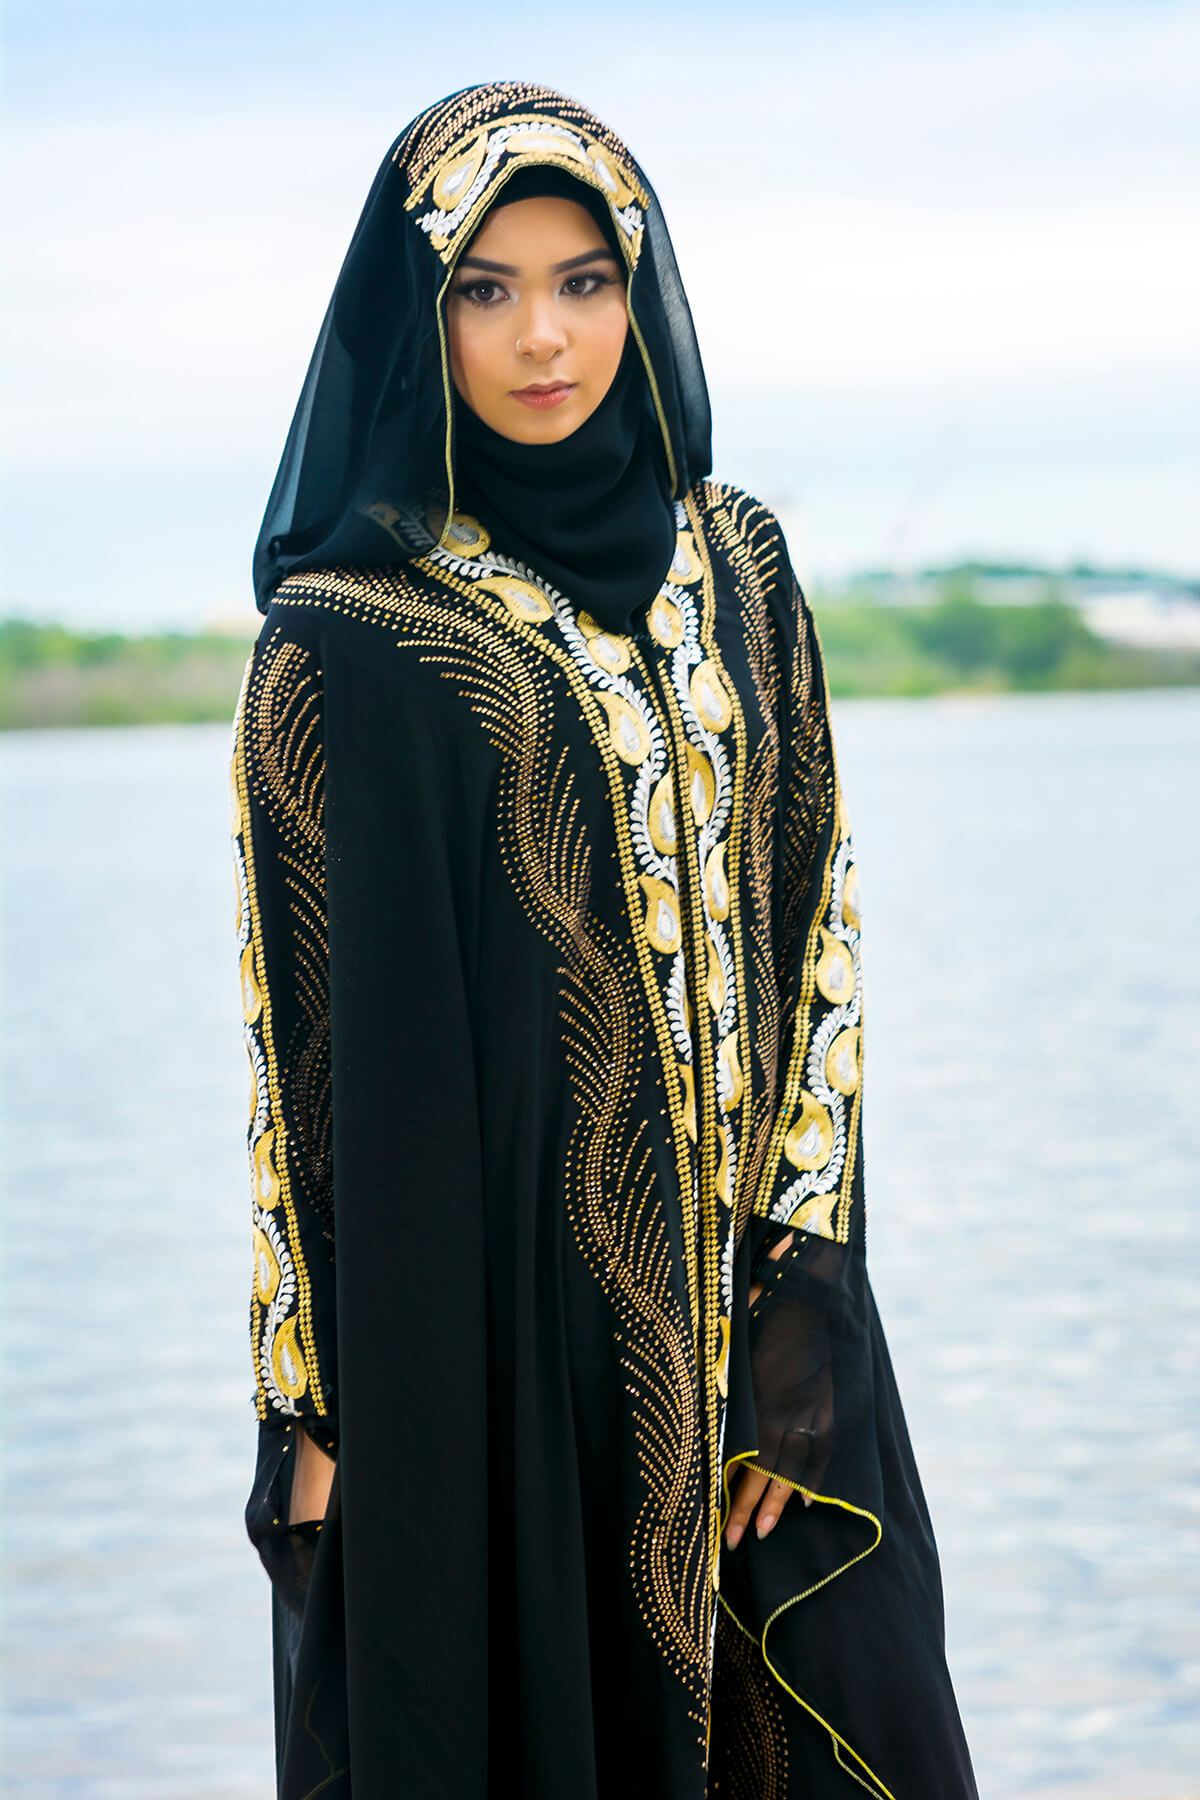 Jersey Abayas, abaya, muslim clothing, muslim fashion, abaya dress, abaya fashion, buy abaya online, abaya islamic clothing, abaya online. fancy abaya, shop abaya, trendy abaya, abaya online shop, abaya addict, modanisa, american abaya, us abaya online shop, open abayas, new arrivals